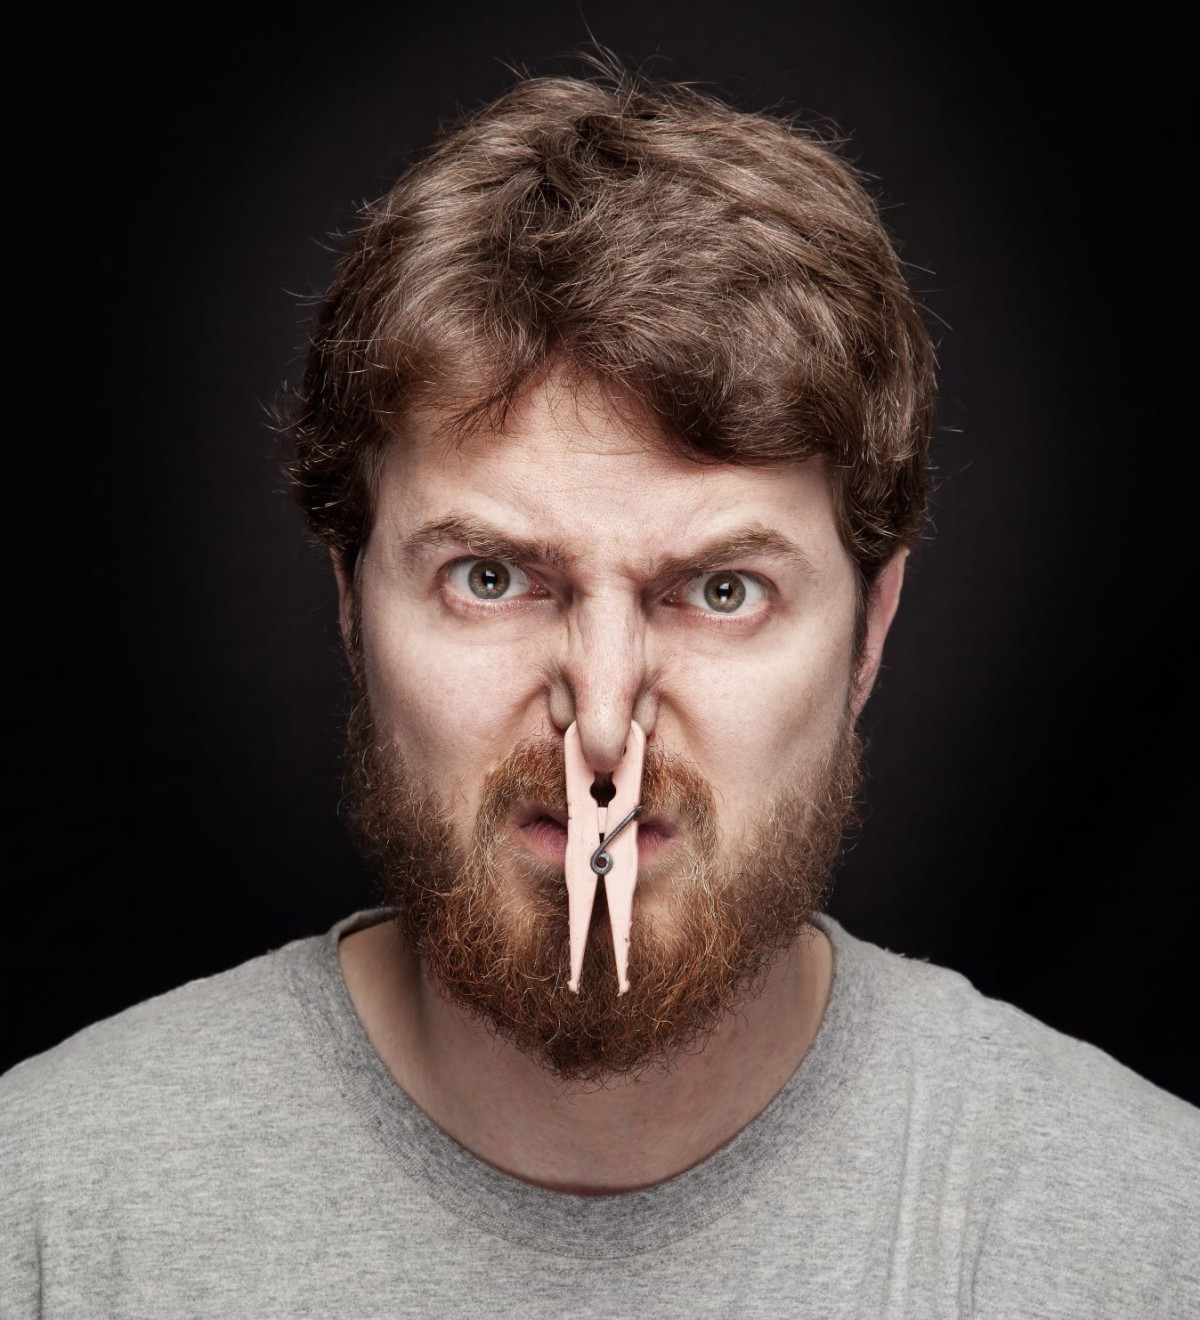 How To Get To The Bottom Of The Smell - Professional Odor Removal